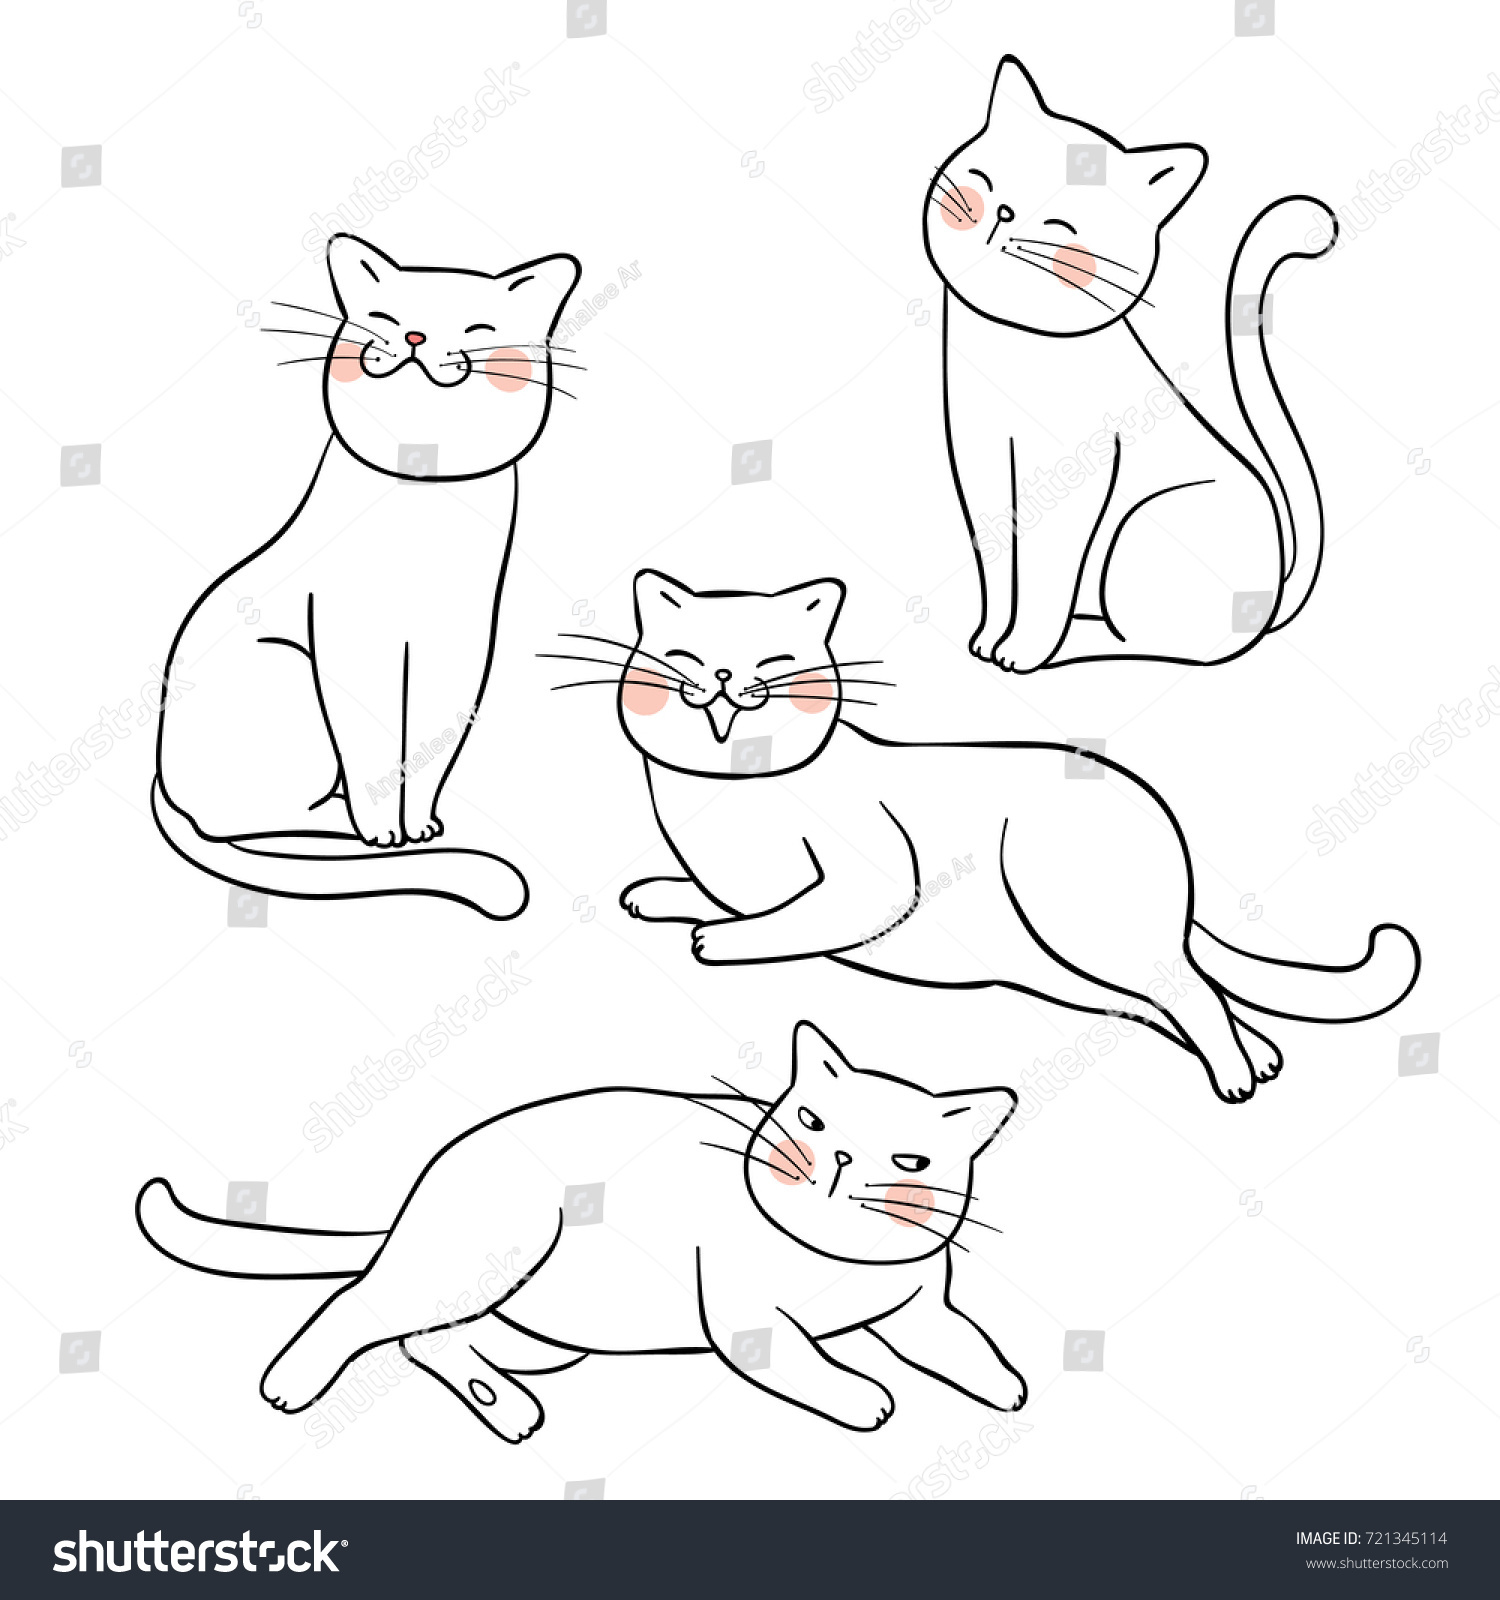 vector illustration character design outline catdraw stock vector